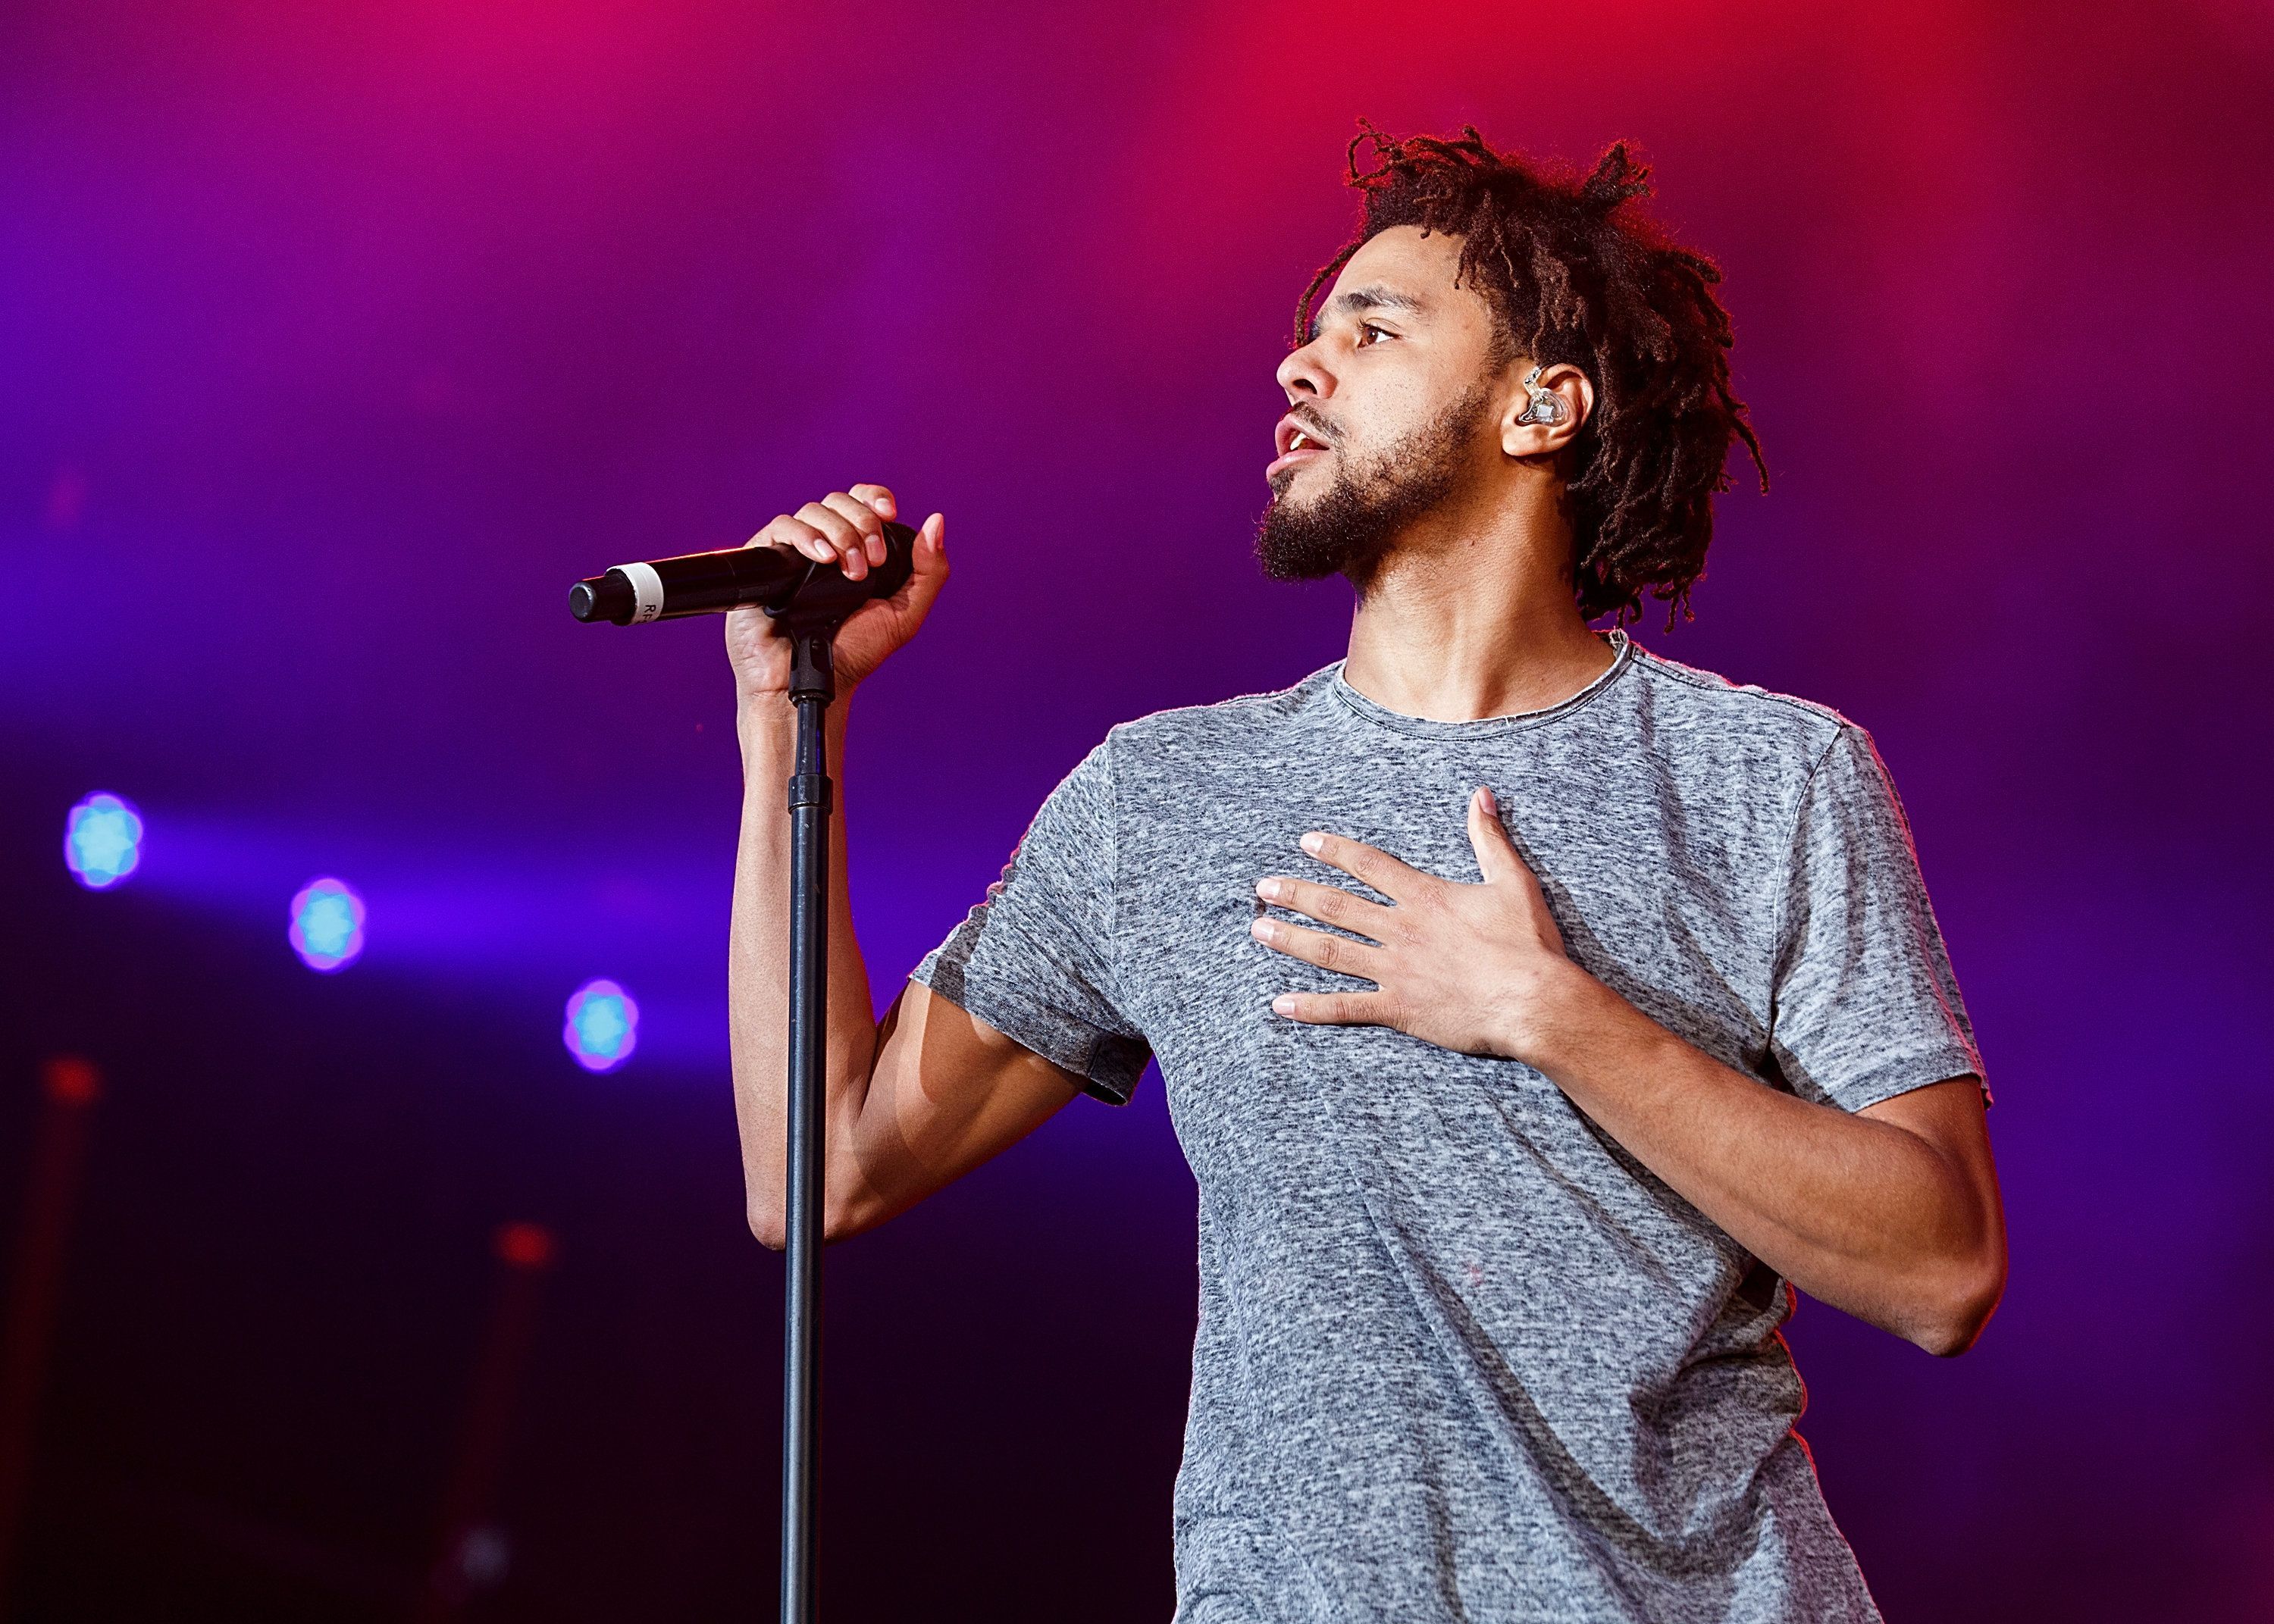 PEMBERTON, BC - JULY 15:  Rapper J. Cole performs onstage during day 2 of Pemberton Music Festival on July 15, 2016 in Pemberton, Canada.  (Photo by Andrew Chin/Getty Images)